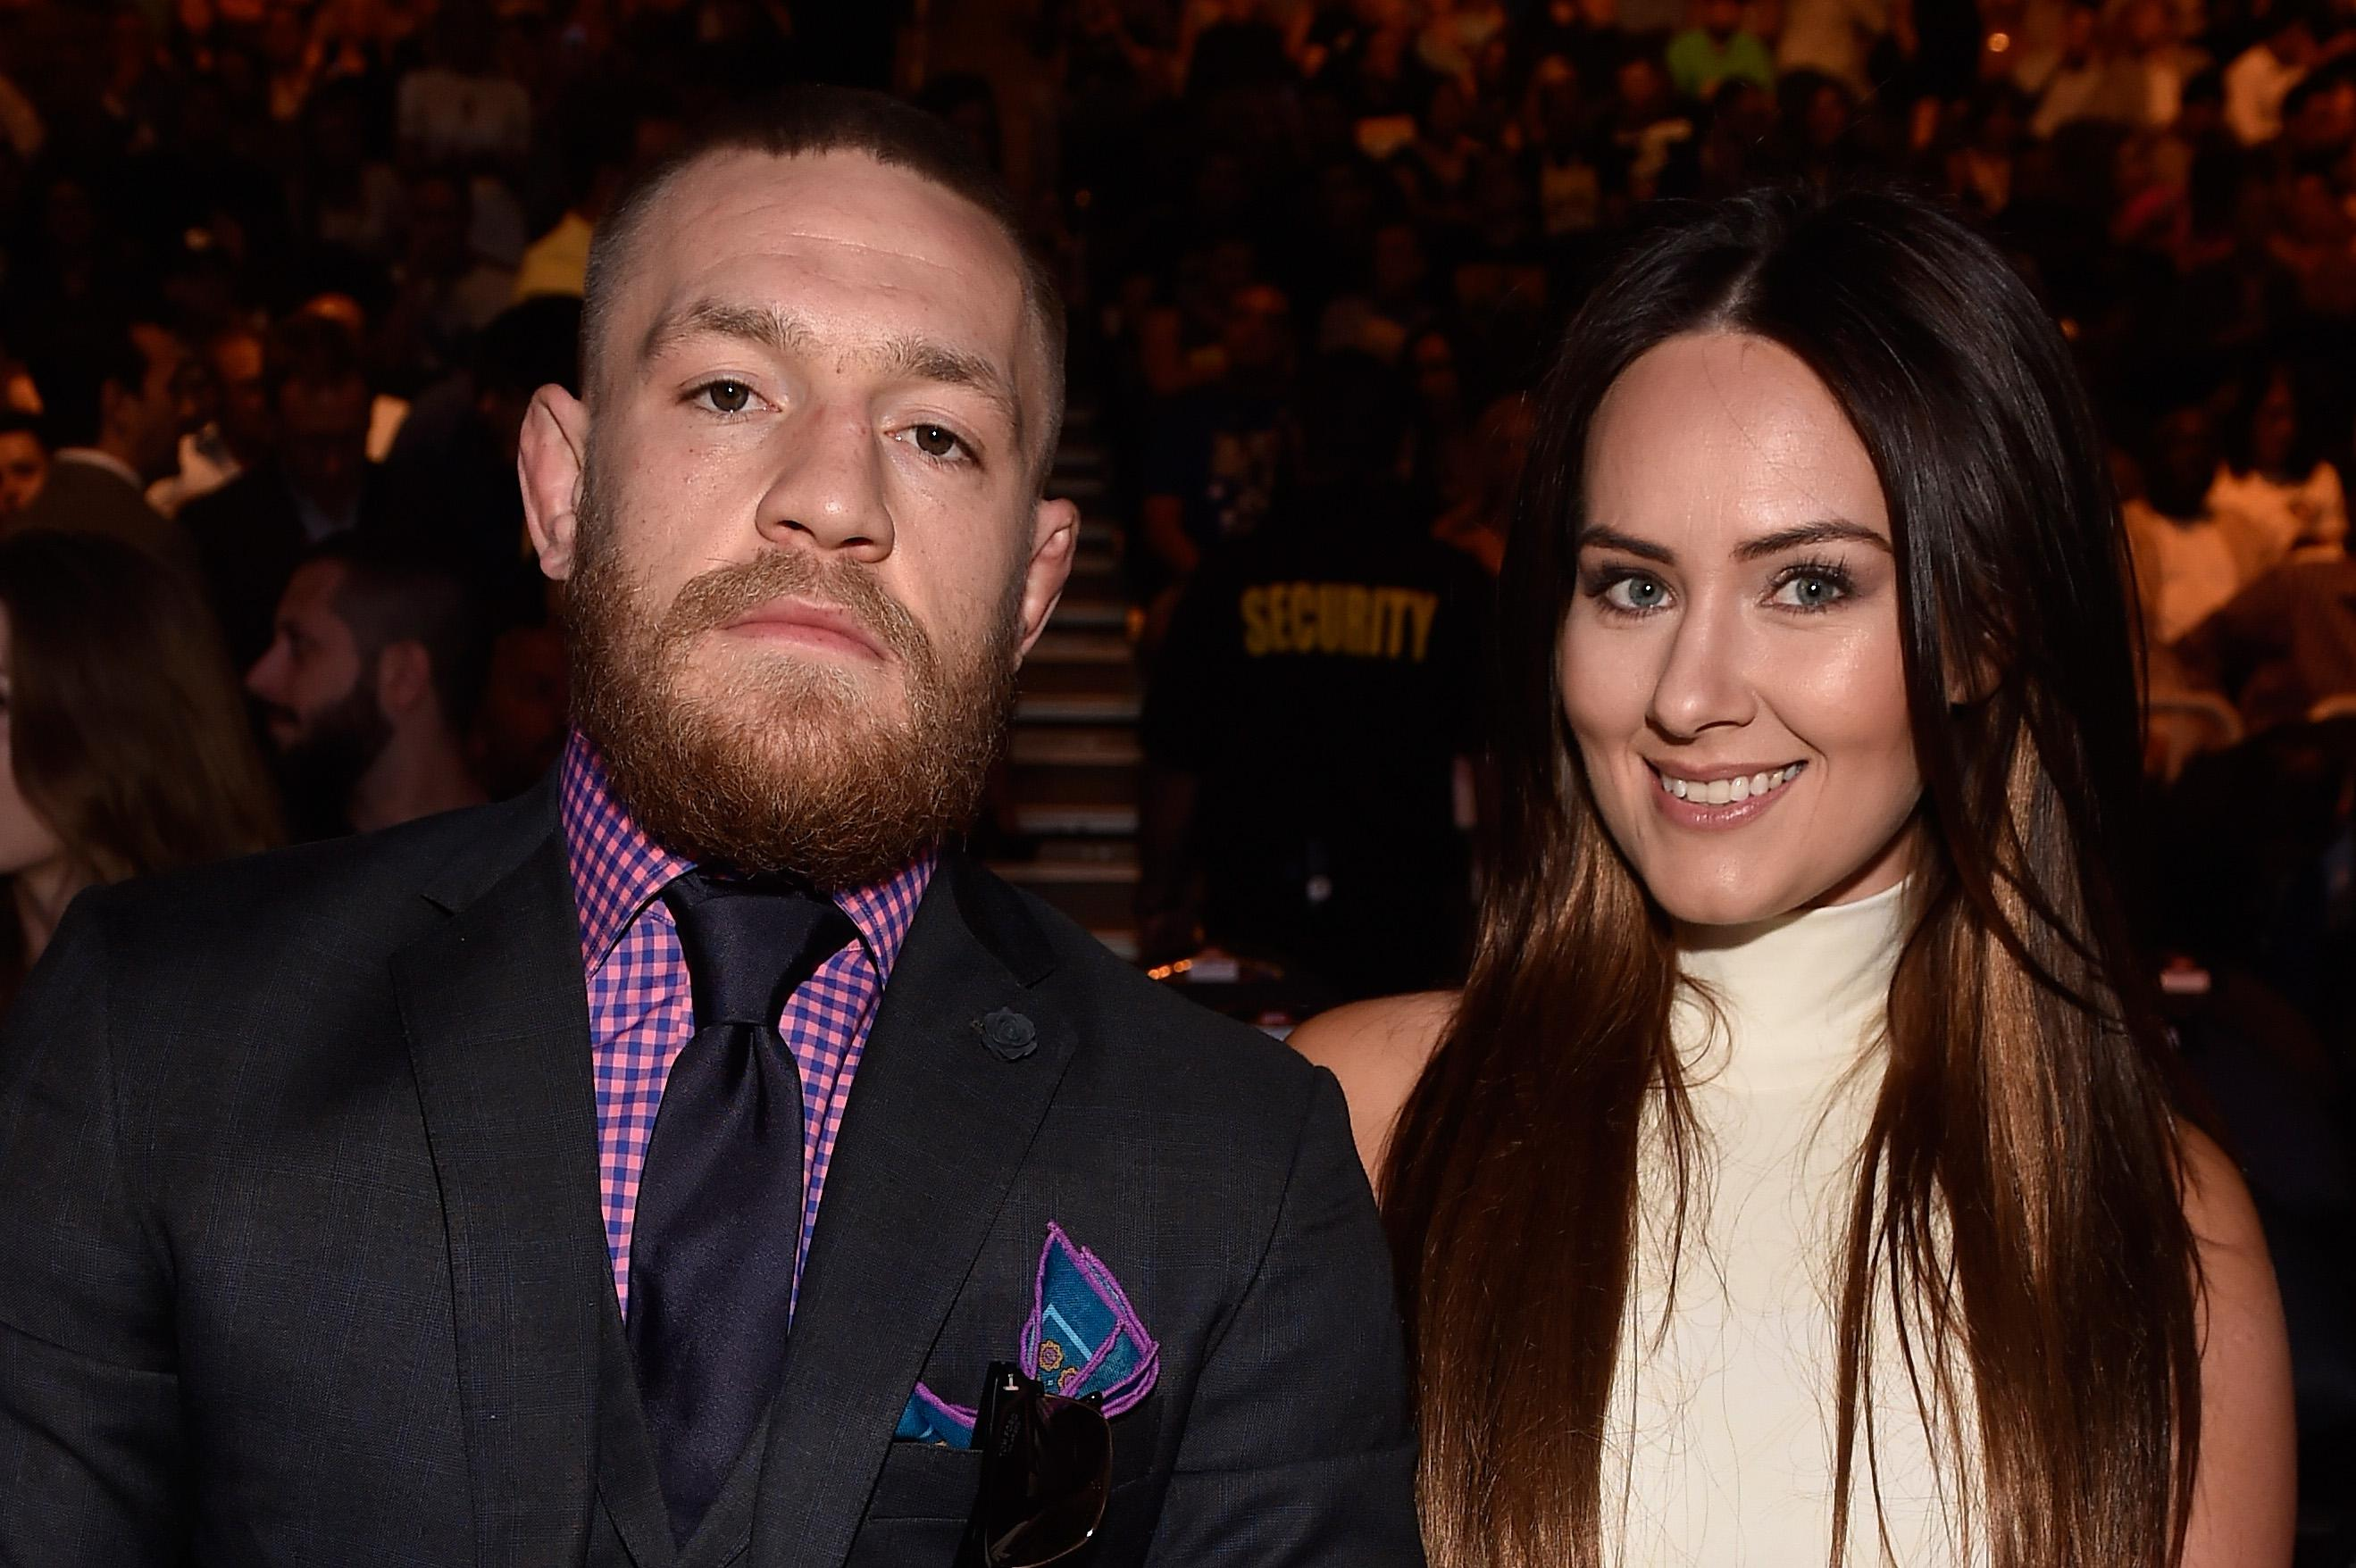 Conor McGregor is going out with Irish stunner Dee Devlin